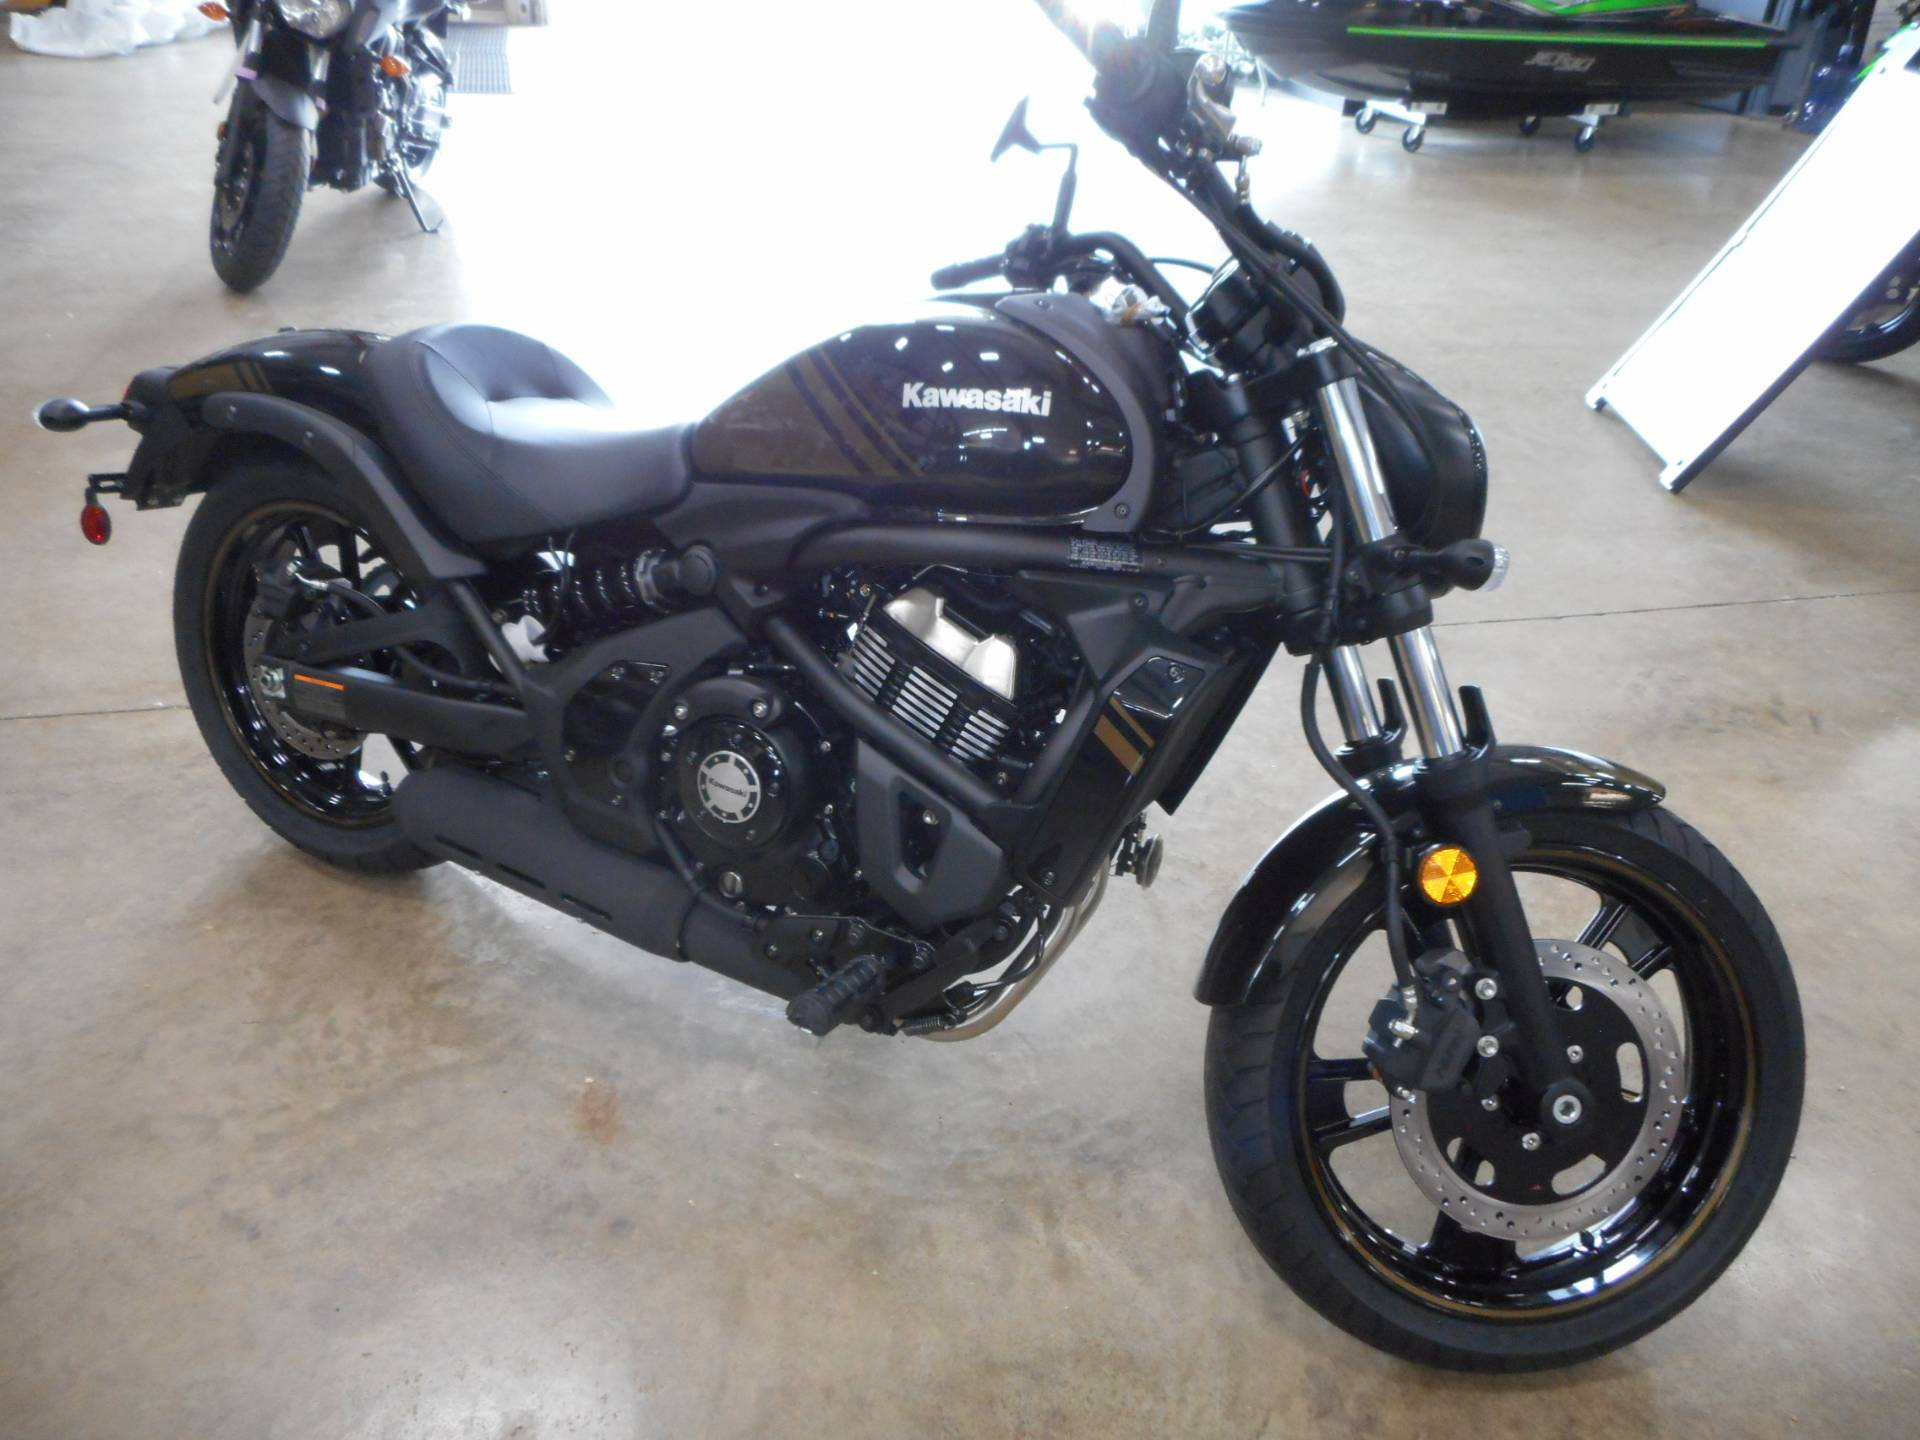 2020 Kawasaki Vulcan S in Belvidere, Illinois - Photo 1